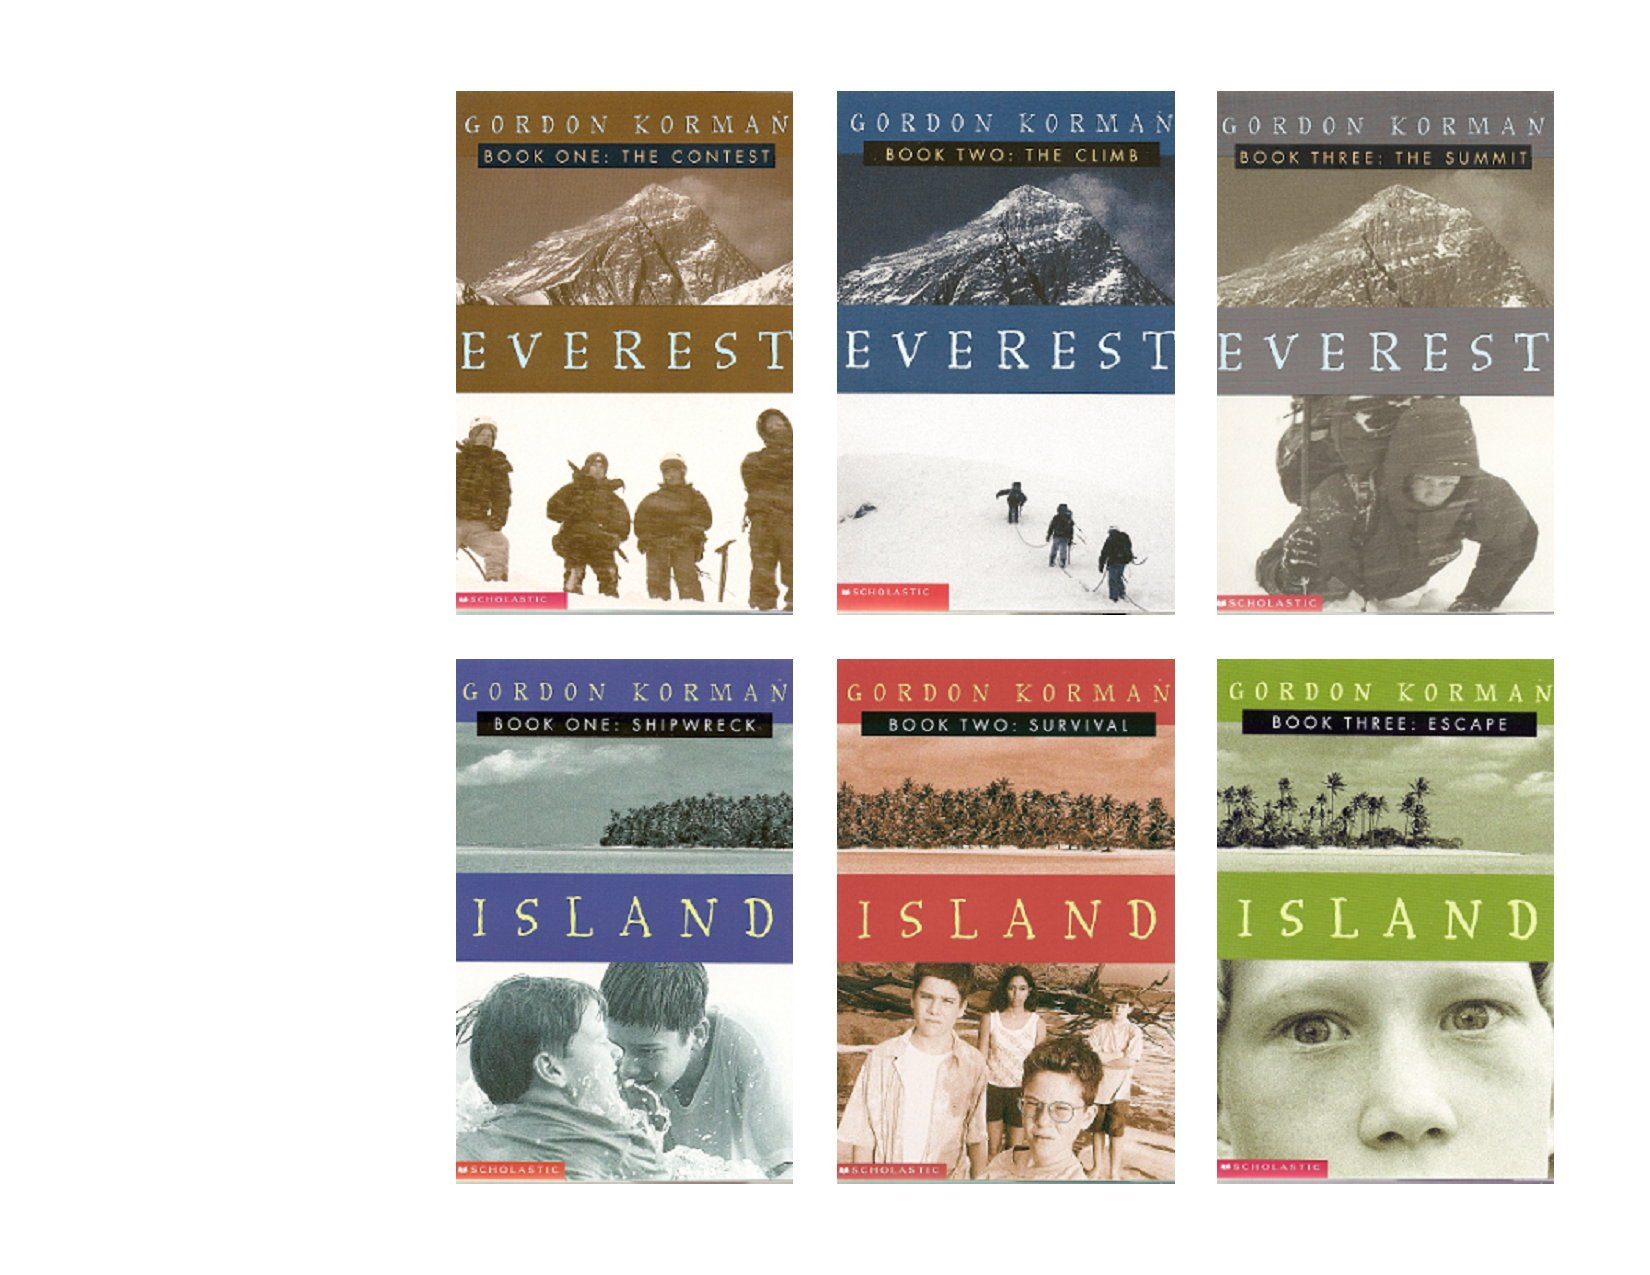 Read Online Two Complete Gordon Korman Trilogies: Everest 1-3: The Contest, The Climb, and The Summit and Island 1-3: Shipwreck, Survival, and Escape (6-Book Set) pdf